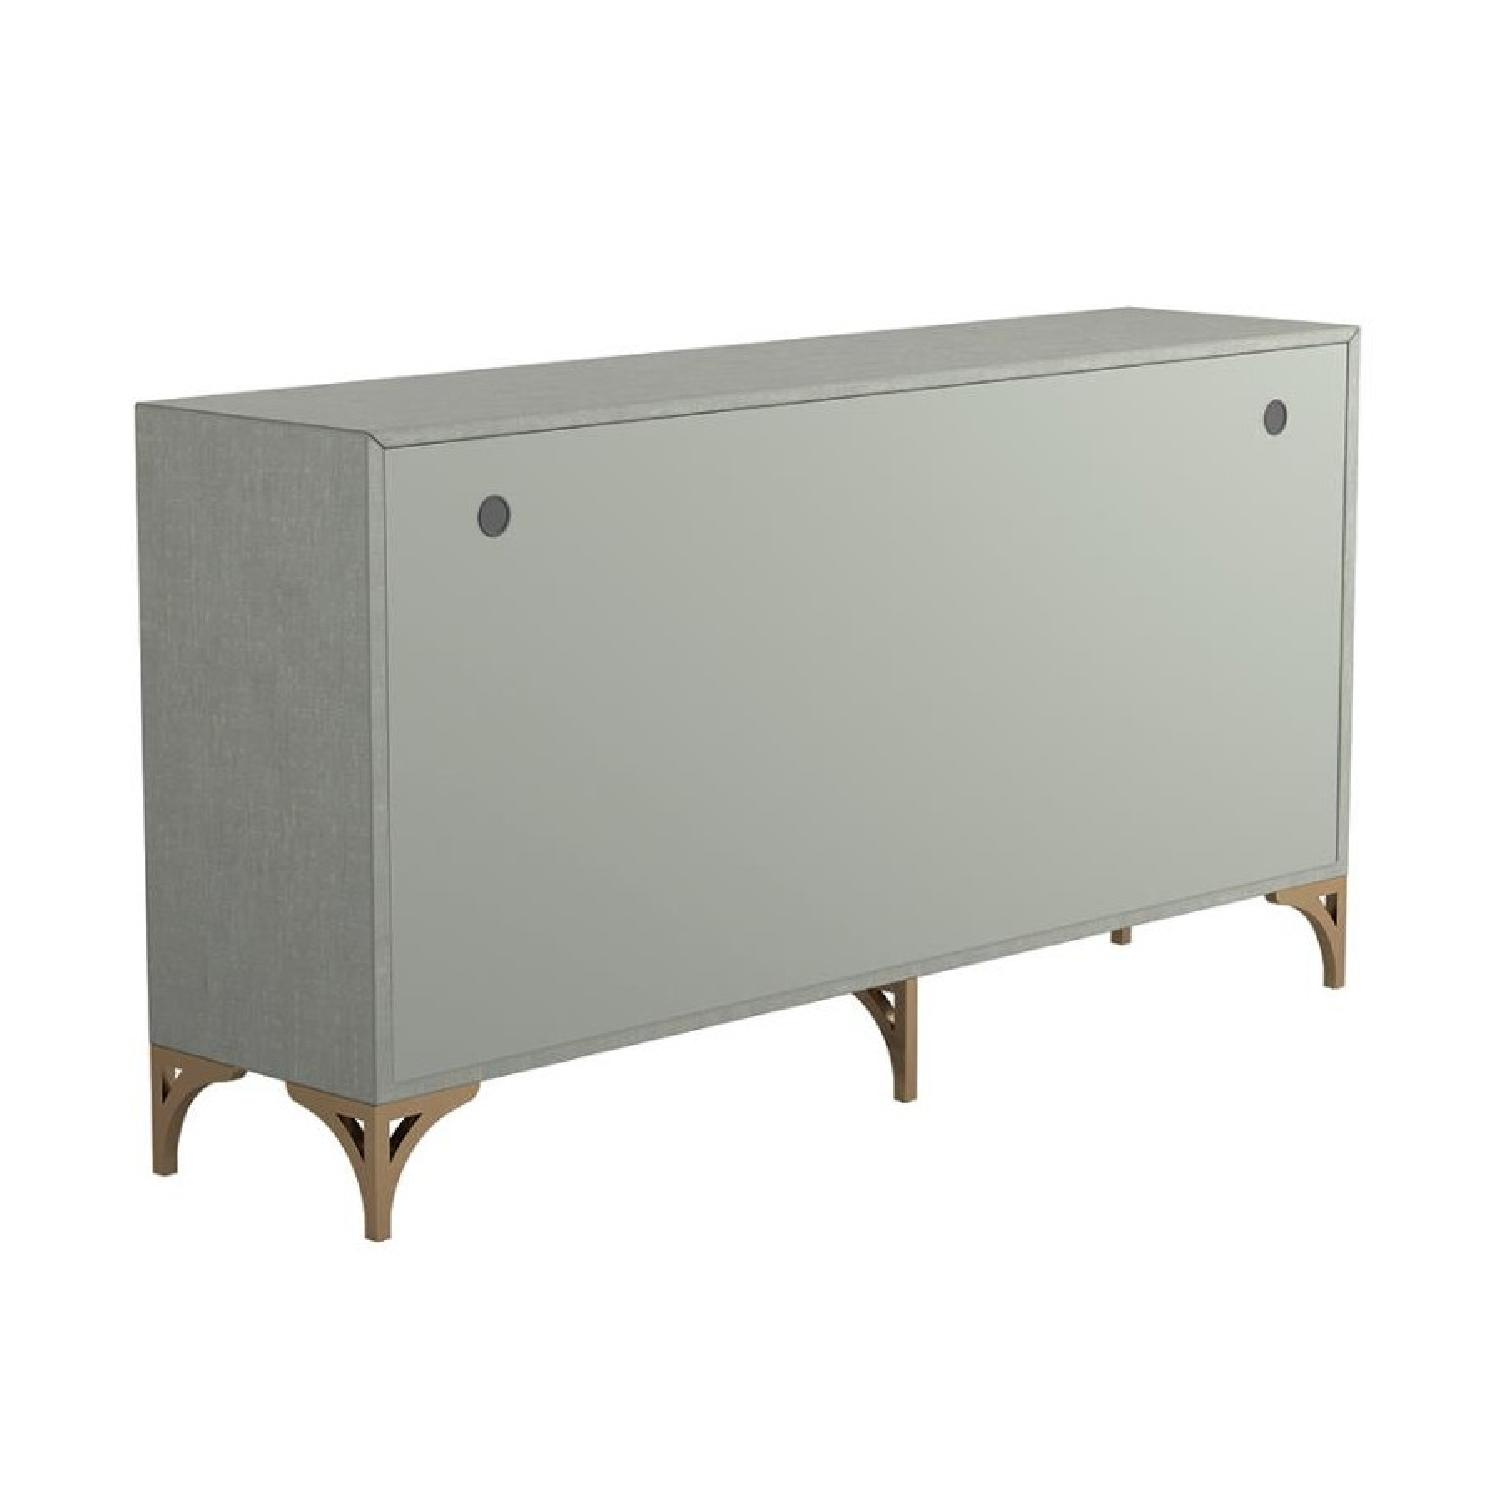 Contemporary Accent Cabinet In Grey Green w/ Bronze Hardware - image-4